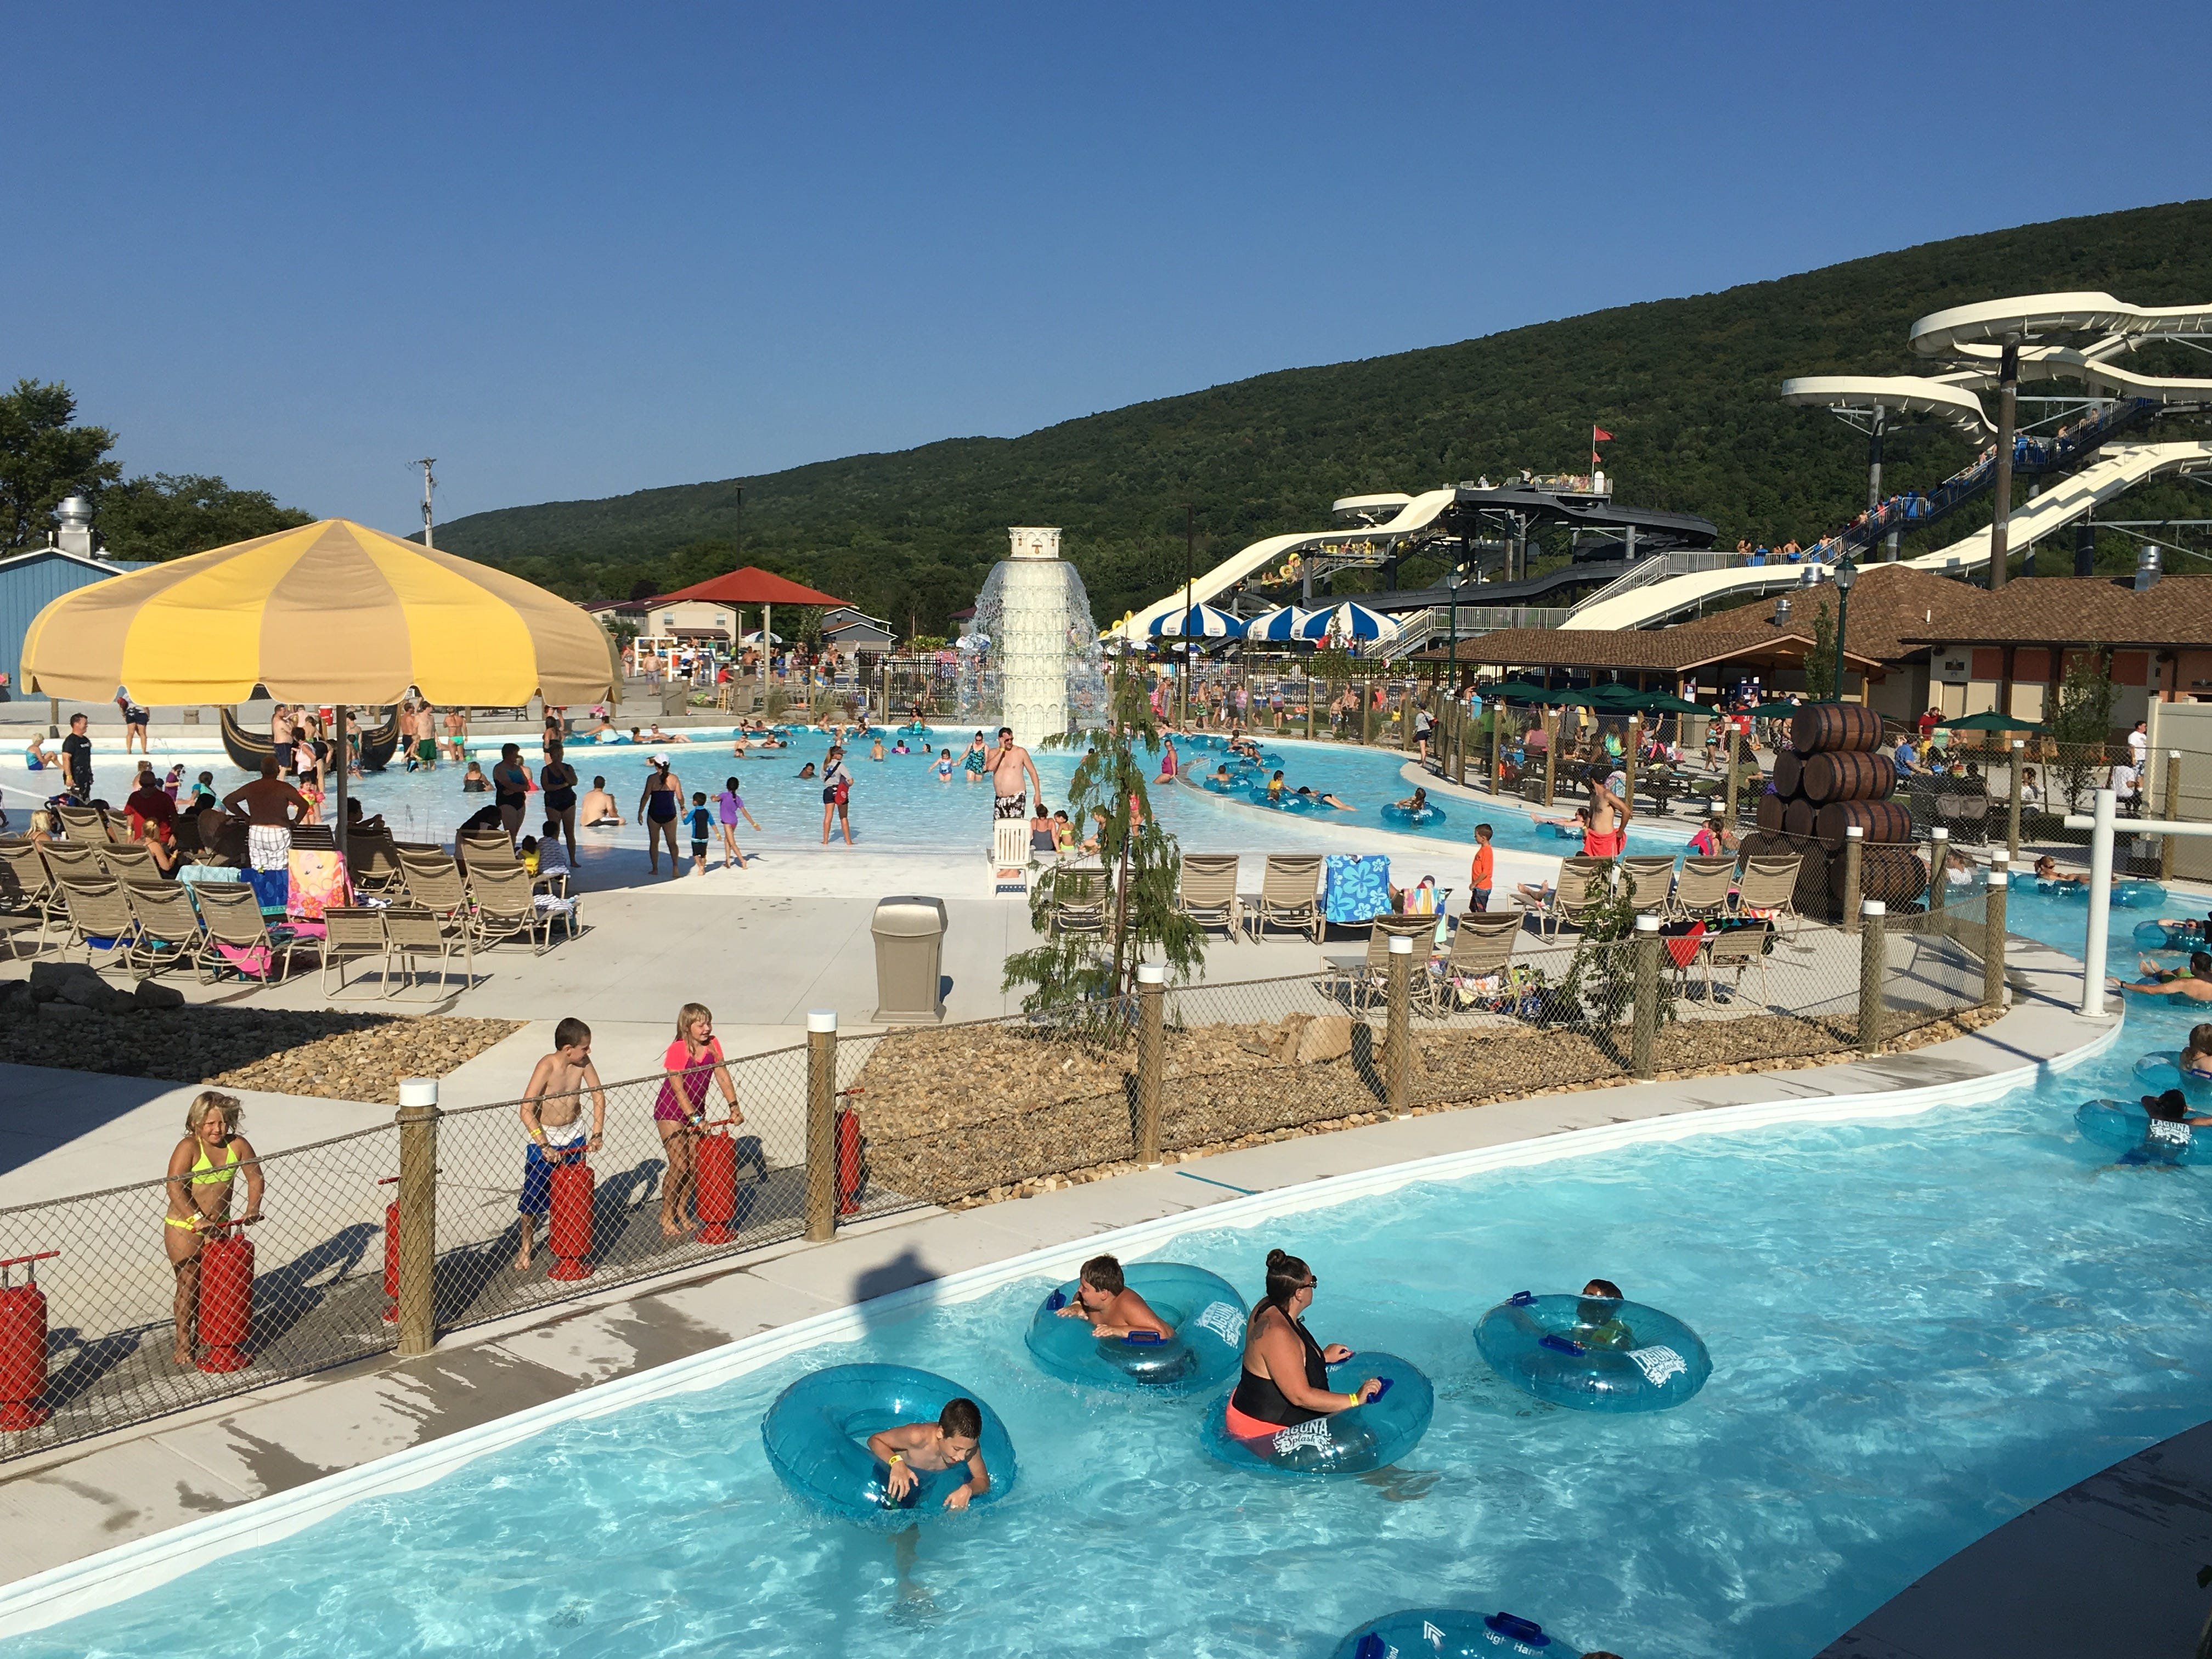 The lazy river at Laguna Splash Water Park at Delgrosso's Park is one of several water attractions available for guests this season.